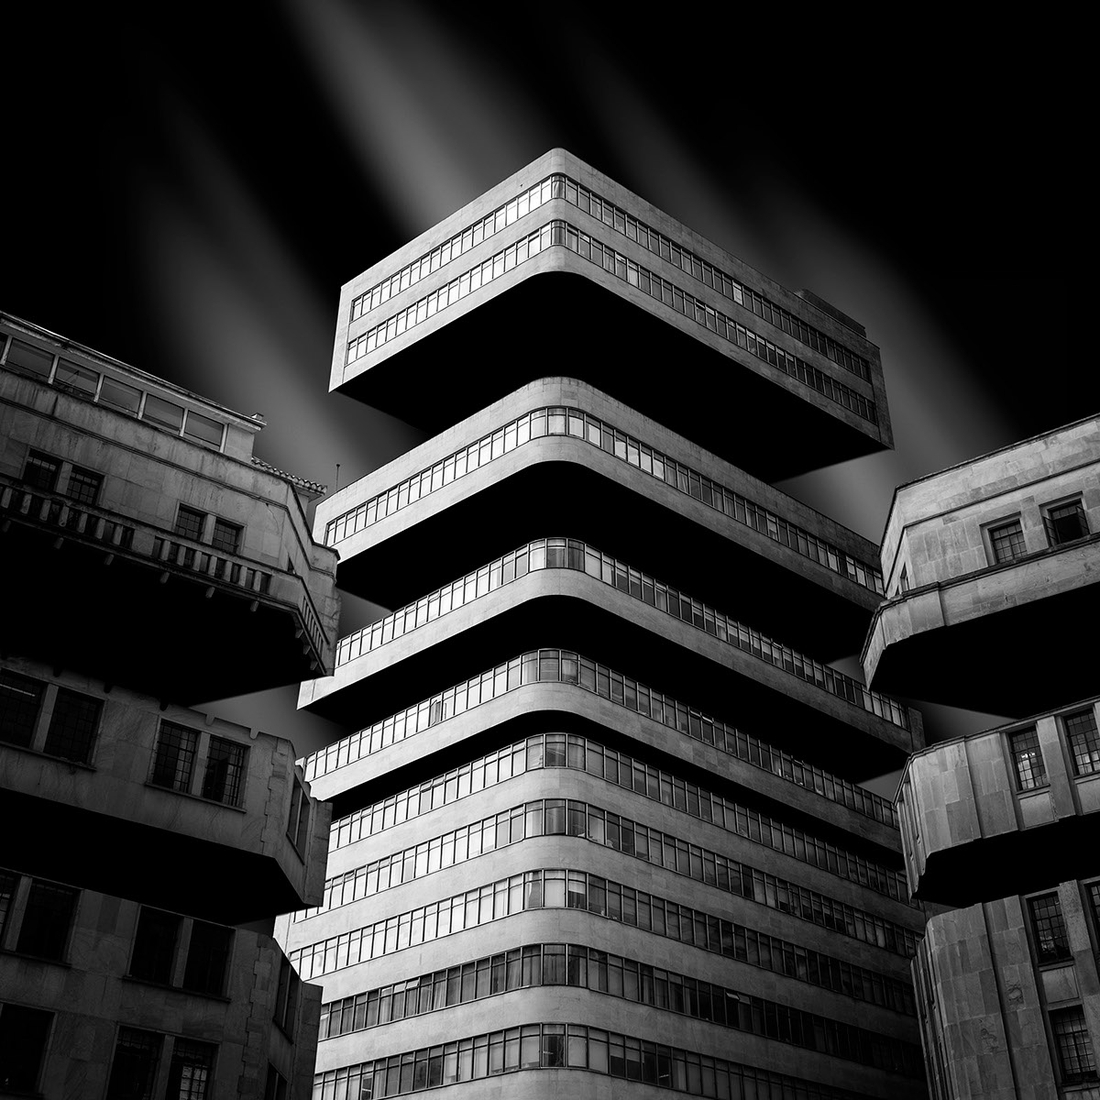 06-Daniel-Garay-Arango-Black-and-White-Surreal-Photographs-Architectural-Deconstruction-www-designstack-co